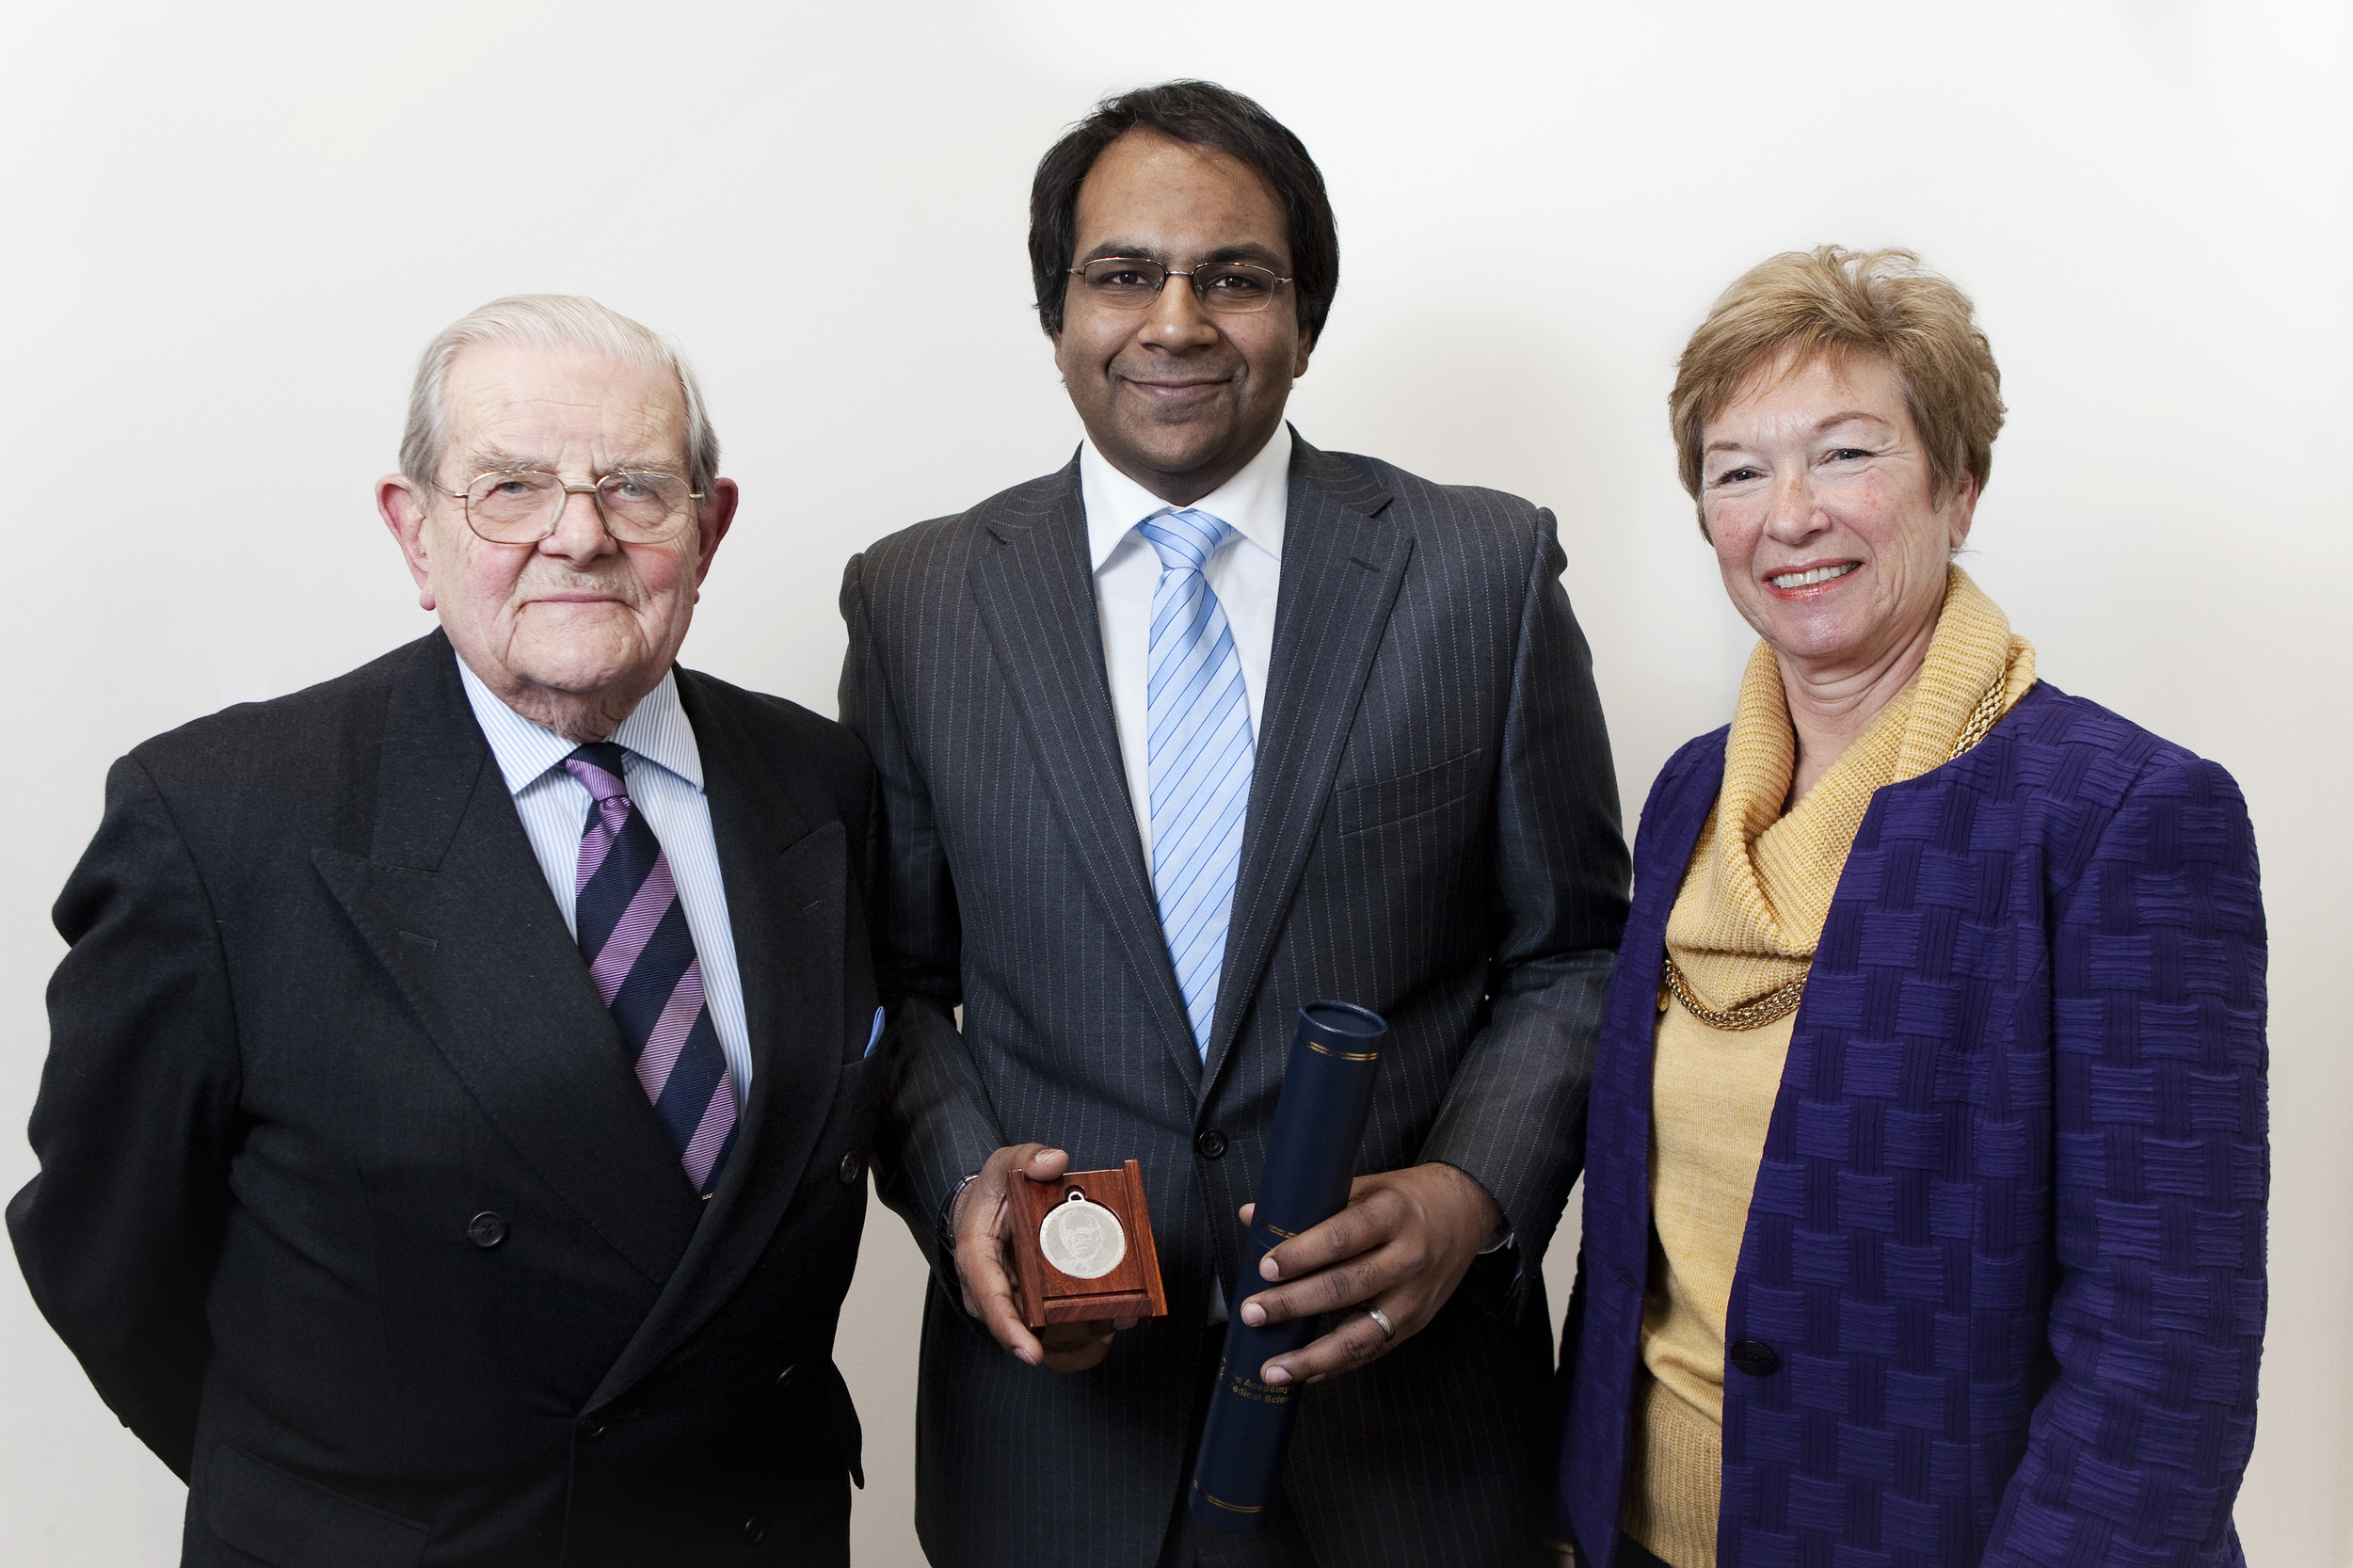 The 2013 Medal Winner with Maureen Foulkes-Hajdu and  Lord Walton of Detchant